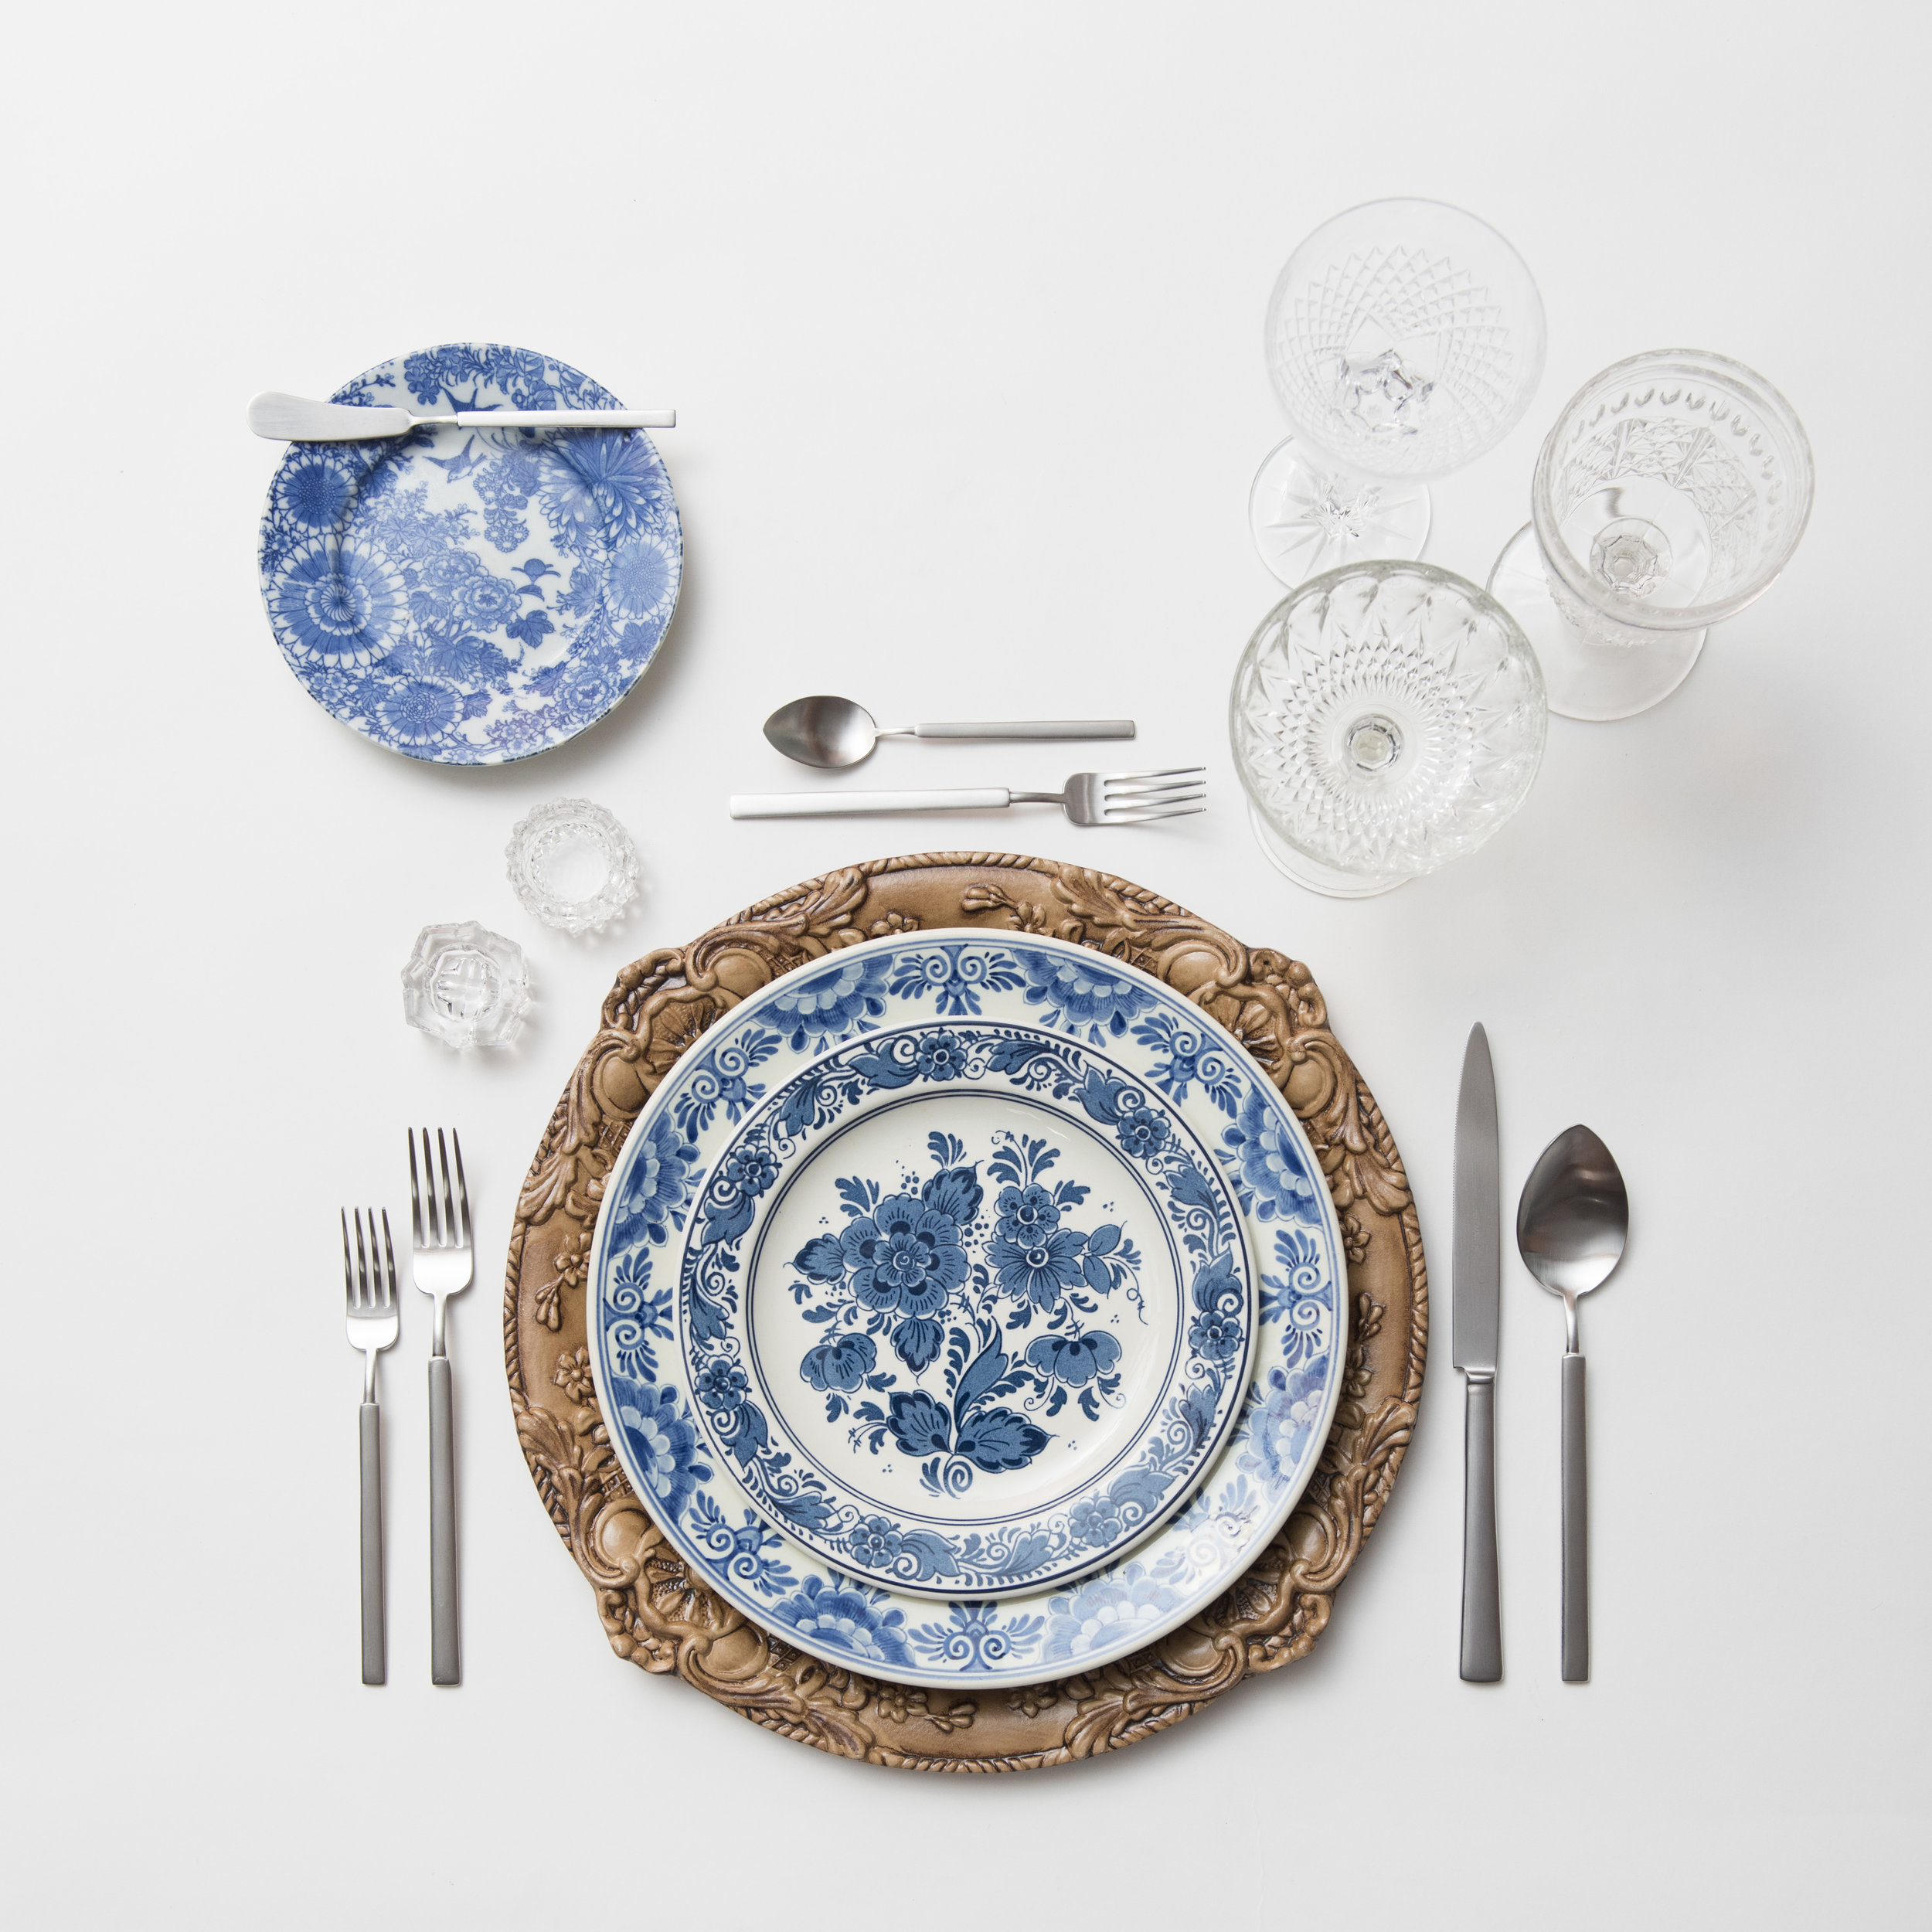 RENT: Verona Chargers in Walnut + Blue Garden Collection Vintage China + Axel Flatware in Matte Silver + Vintage Cut Crystal Goblets + Early American Pressed Glass Goblets + Vintage Champagne Coupes + Antique Crystal Salt Cellars   SHOP: Verona Chargers in Walnut